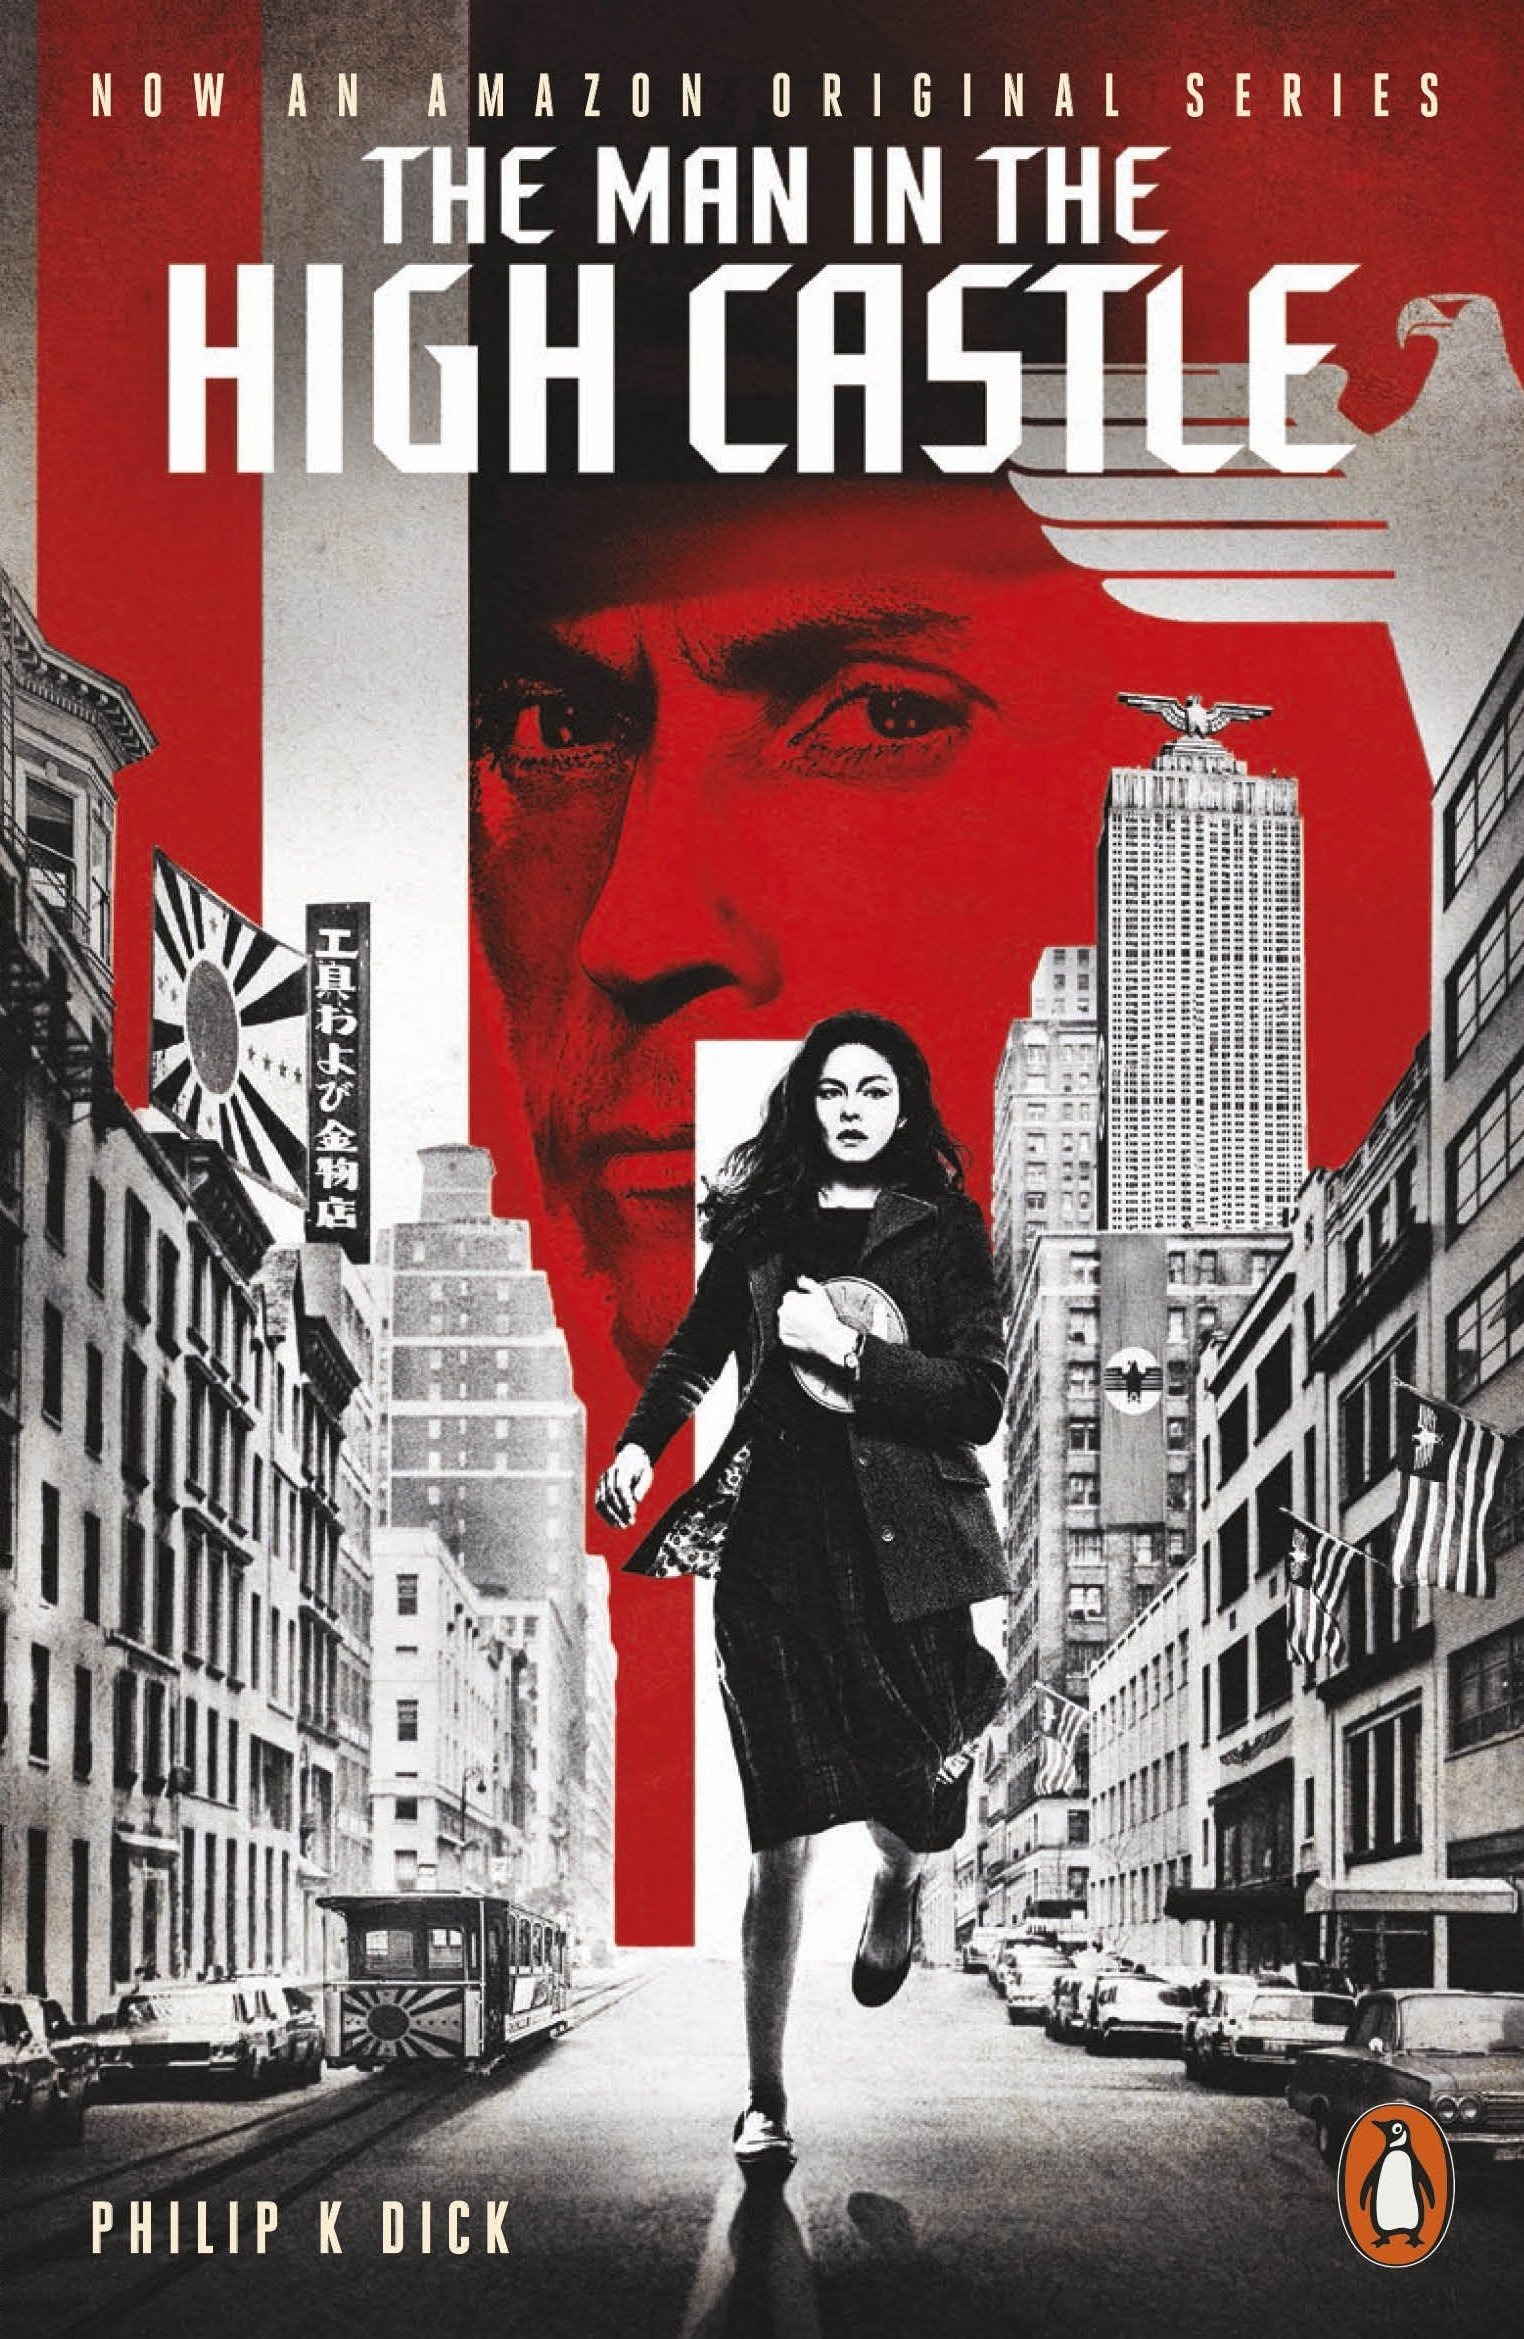 Download The Man in the High Castle 2015 Season 02 1080p WEBRip x265